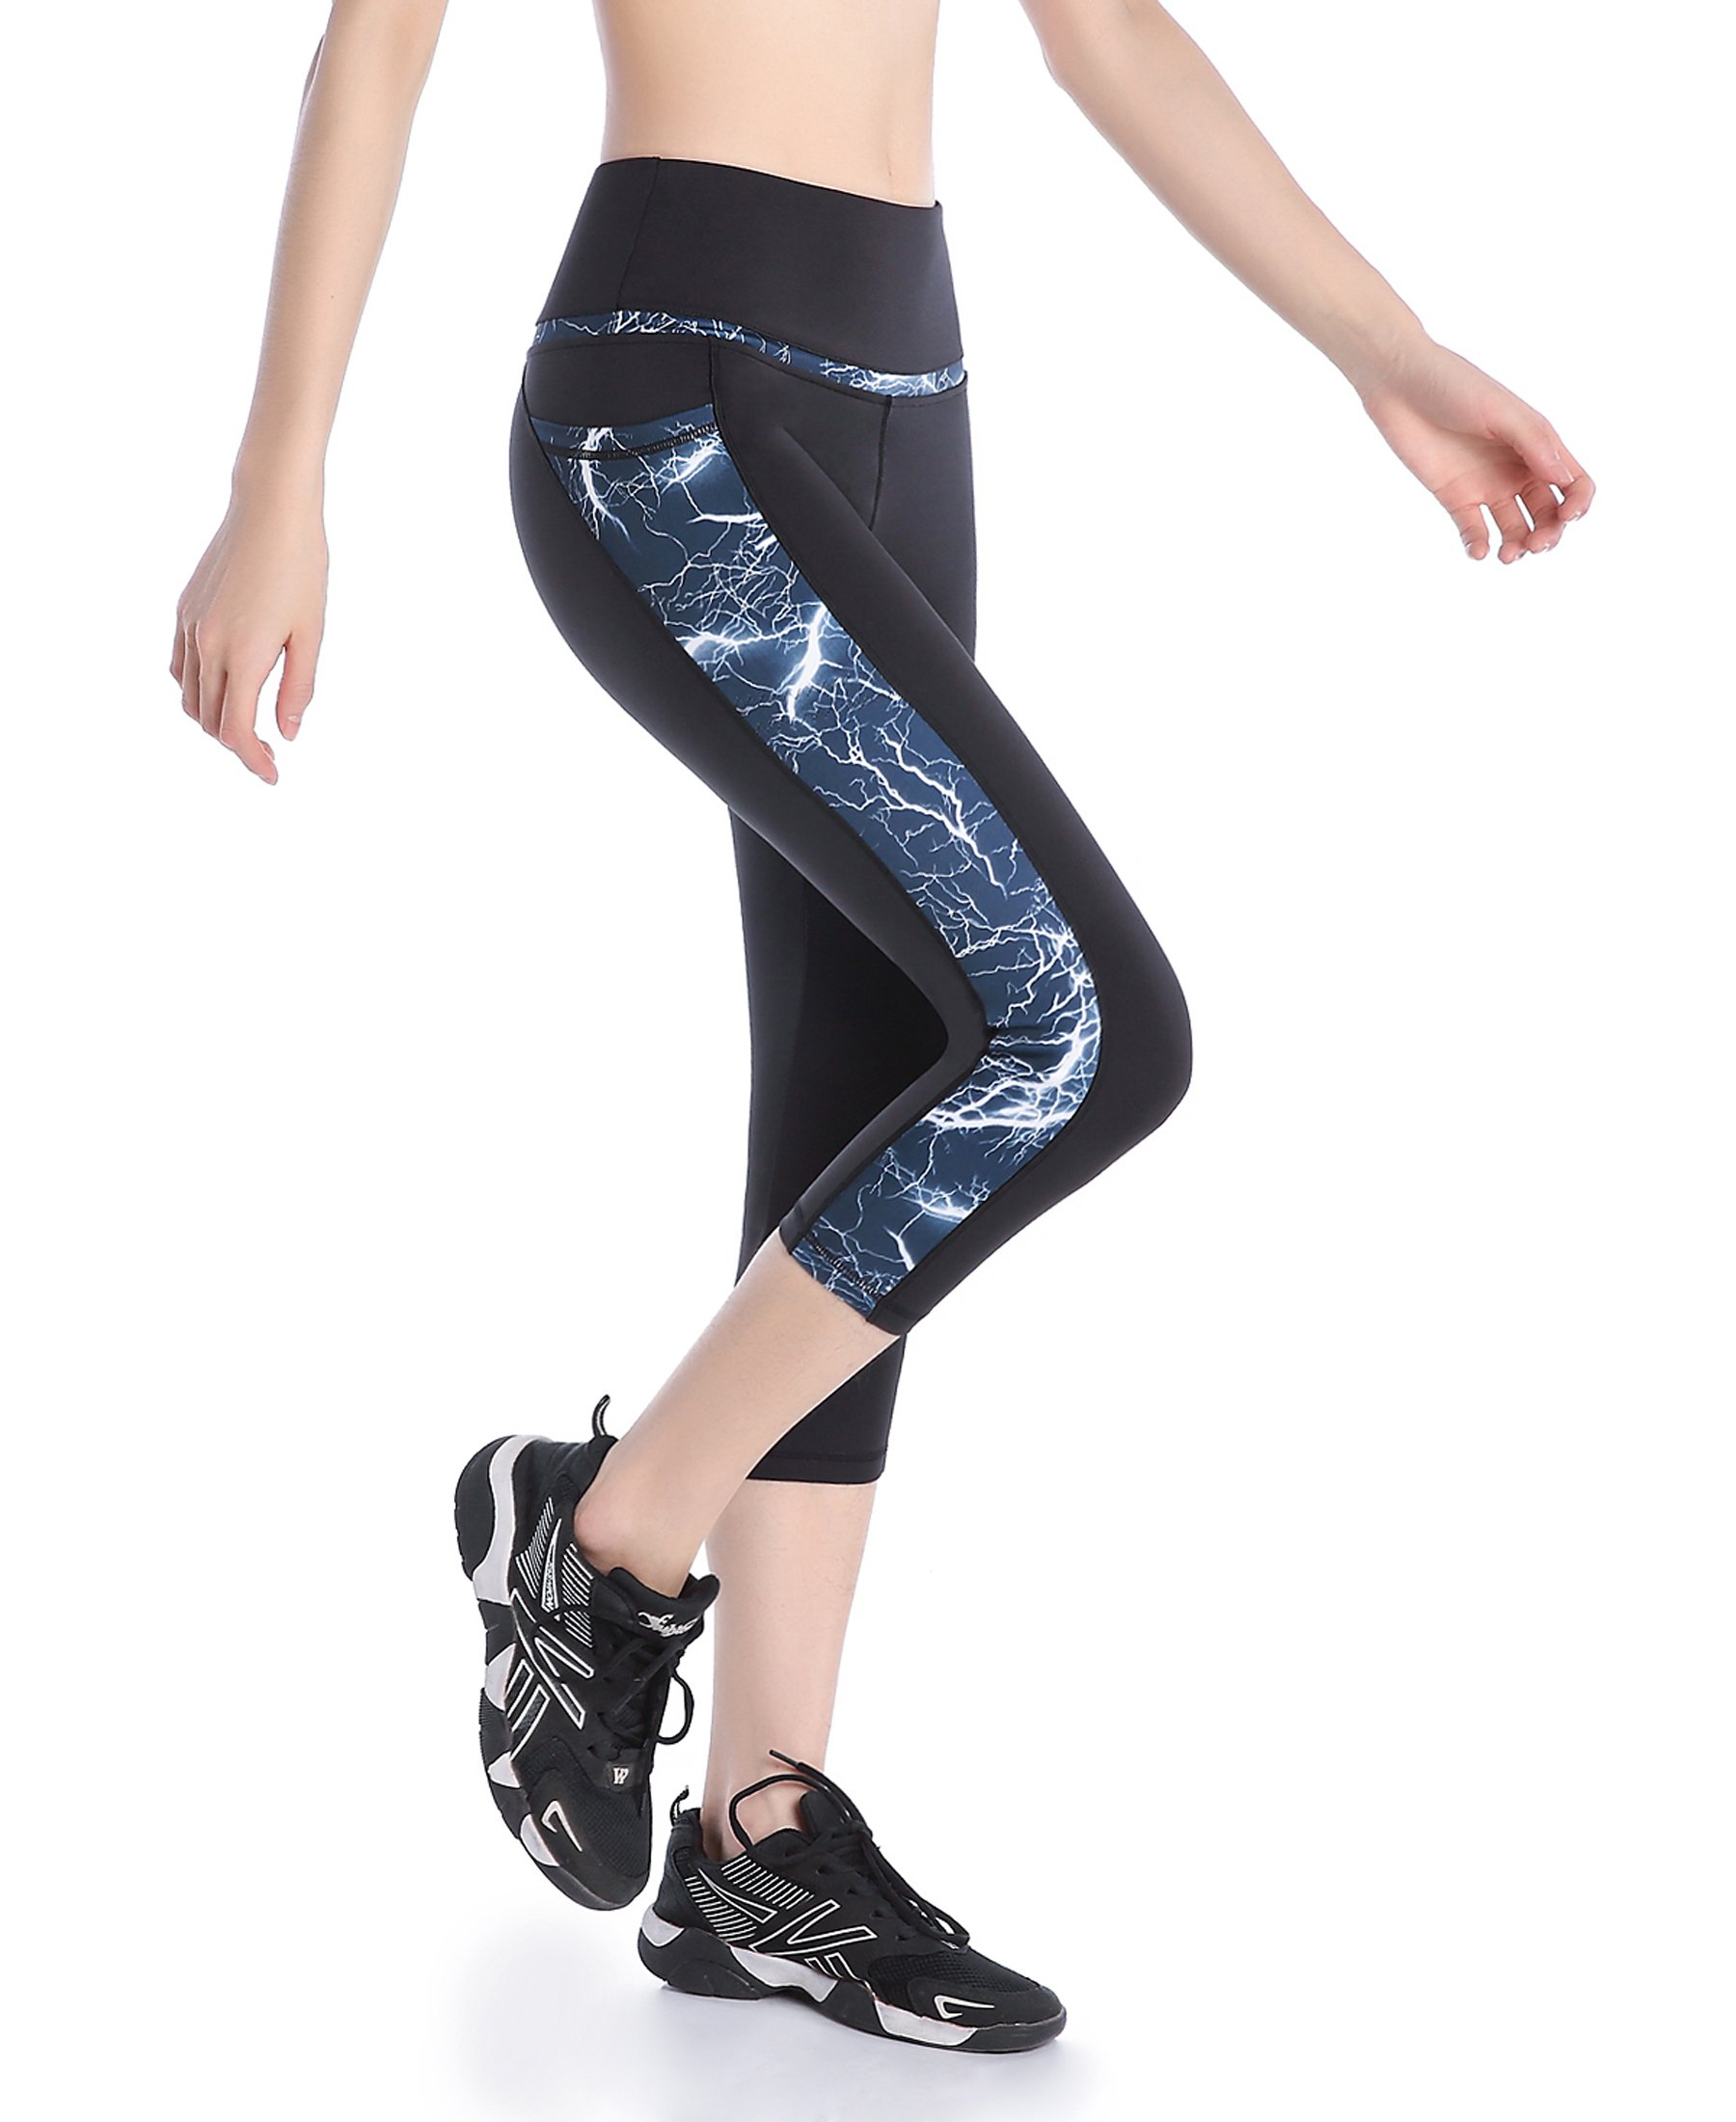 Picotee Women's Yoga Capri Pants Workout Running Pants Leggings High Waist with Pocket (XL, Blue Lightning)